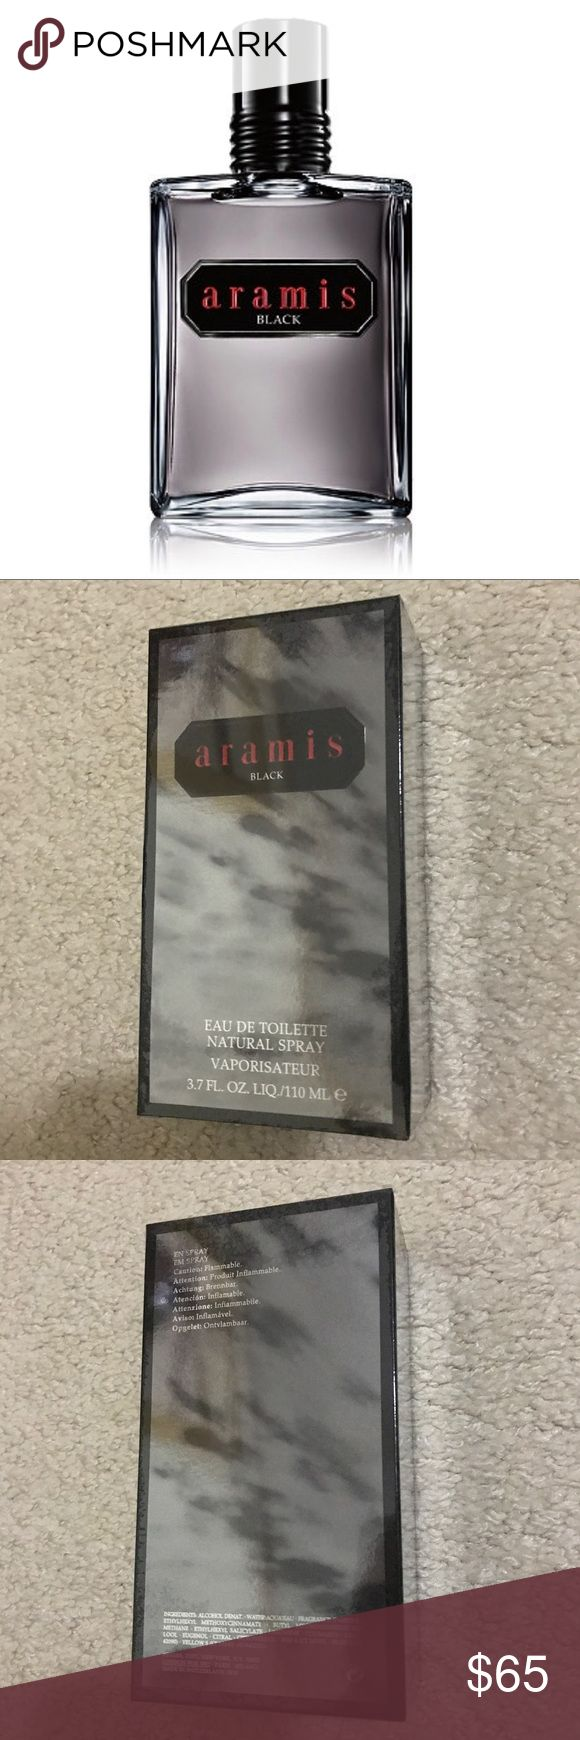 ✨NEW✨Aramis Black Eau de Toilette (3.7 fl oz) ✔️UNOPENED   Racy and mysterious, Aramis Black is ideal for the modern man. Aramis Black represents another dimension to the Aramis man.  Fragrance Notes: Top - Orange oil, blackcurrant, violet leaves, iced grapefruit Middle - Cassie absolute Egypt LMR, Jasmine sambac, Turkish rose LMR Base - Cedarwood heart LMR, vibrant amber woods, cashmeran Sephora Other